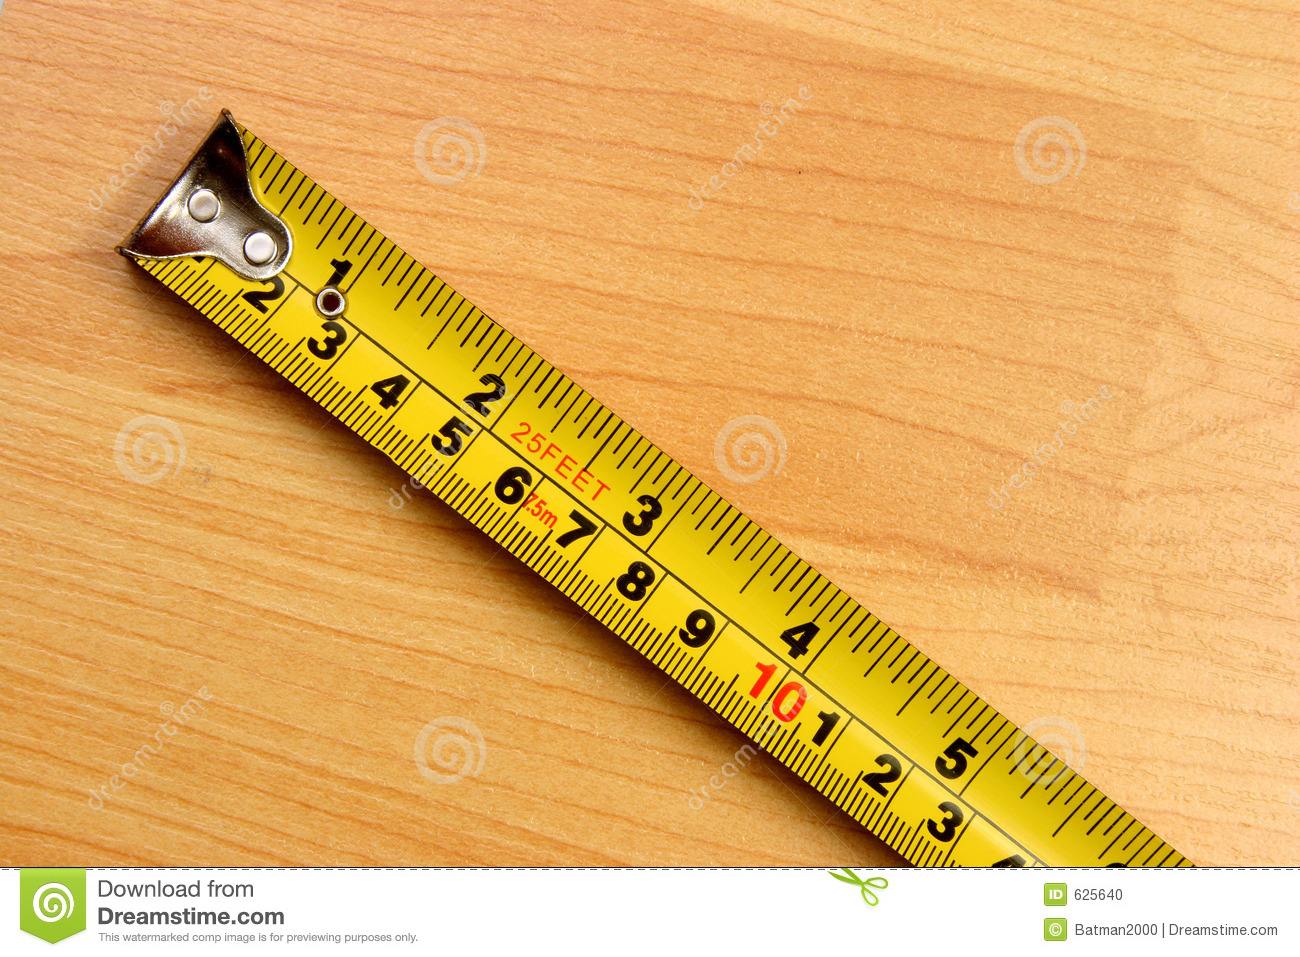 Convenience Store Layout also 54 also Stock Photo Measuring Scale Image625640 also Archive furthermore Office Electrical Layout Plan. on sample office floor plan